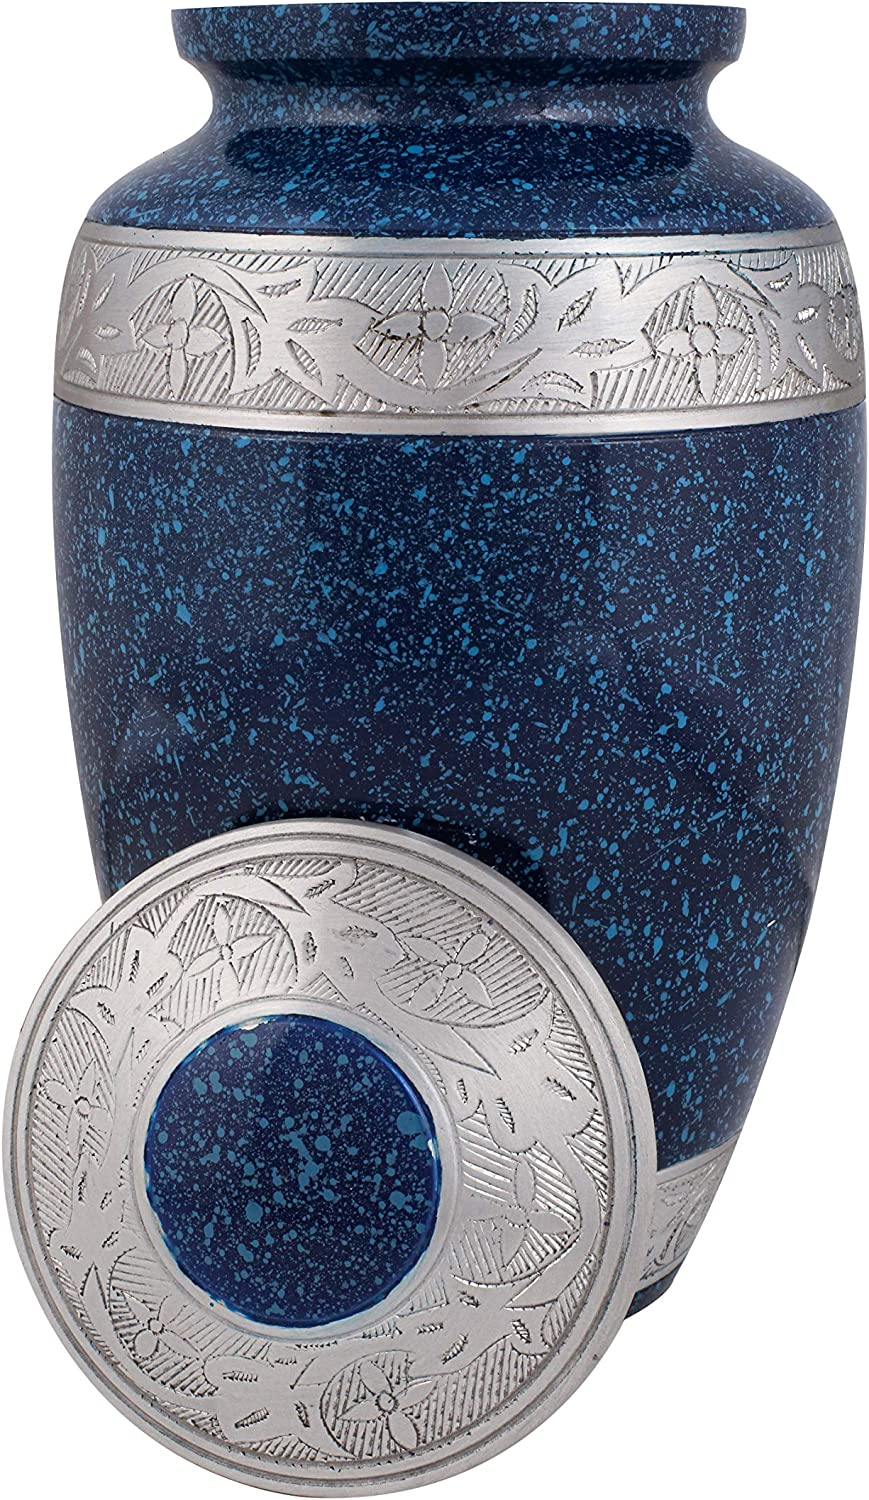 Pewter Large Urn for Human Ashes - A Beautiful and Humble Urn for Your Loved Ones Remains with Engraved. This Lovely - Urn Will Bring You Comfort Each Time You See It, Size 10x6.75 inch-Blue Patina